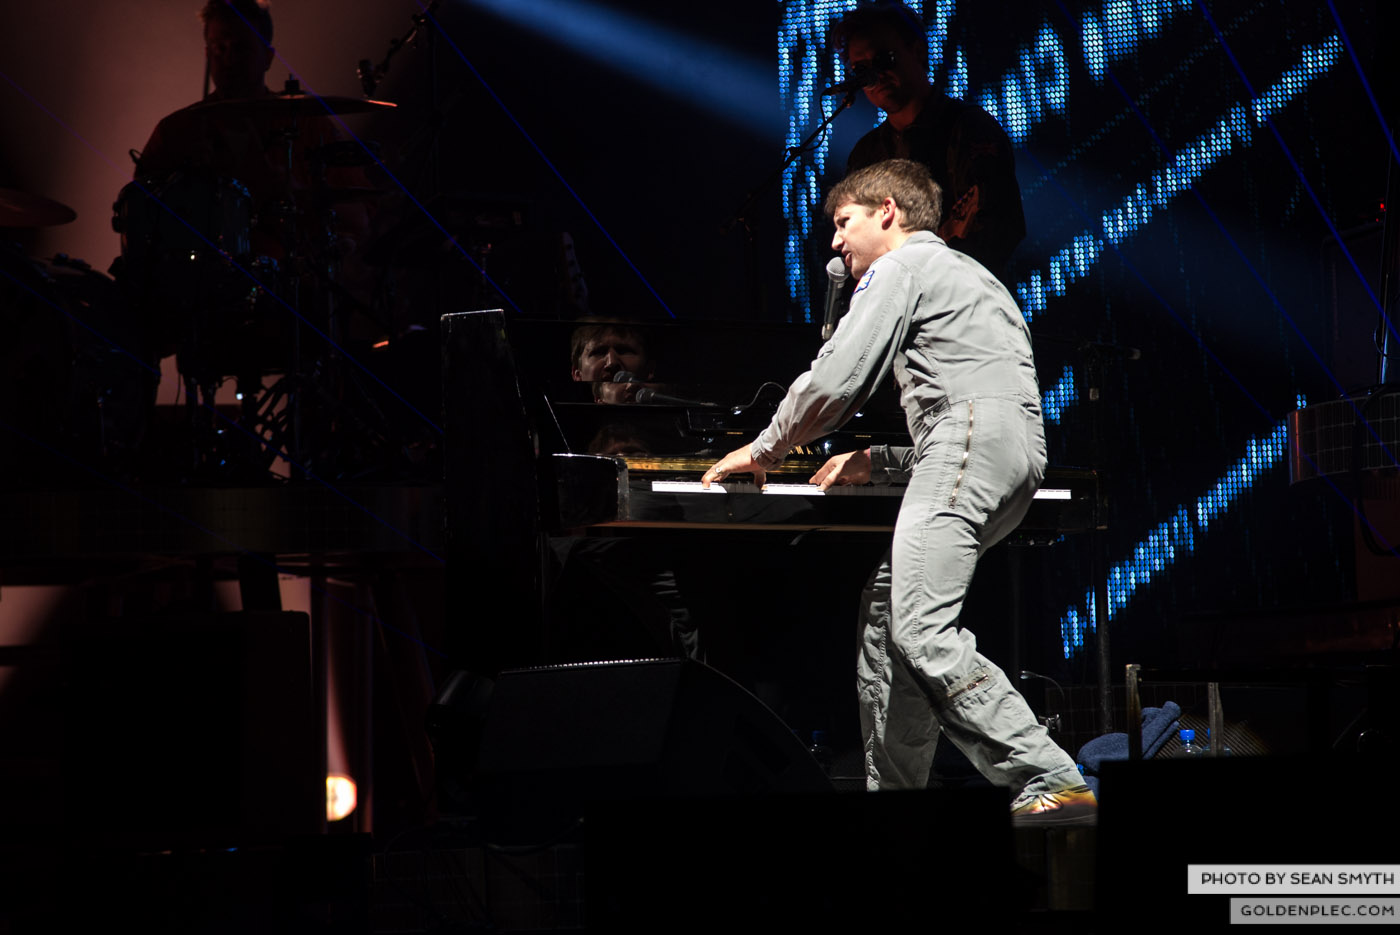 james-blunt-at-3arena-by-sean-smyth-20-11-14-7-of-29